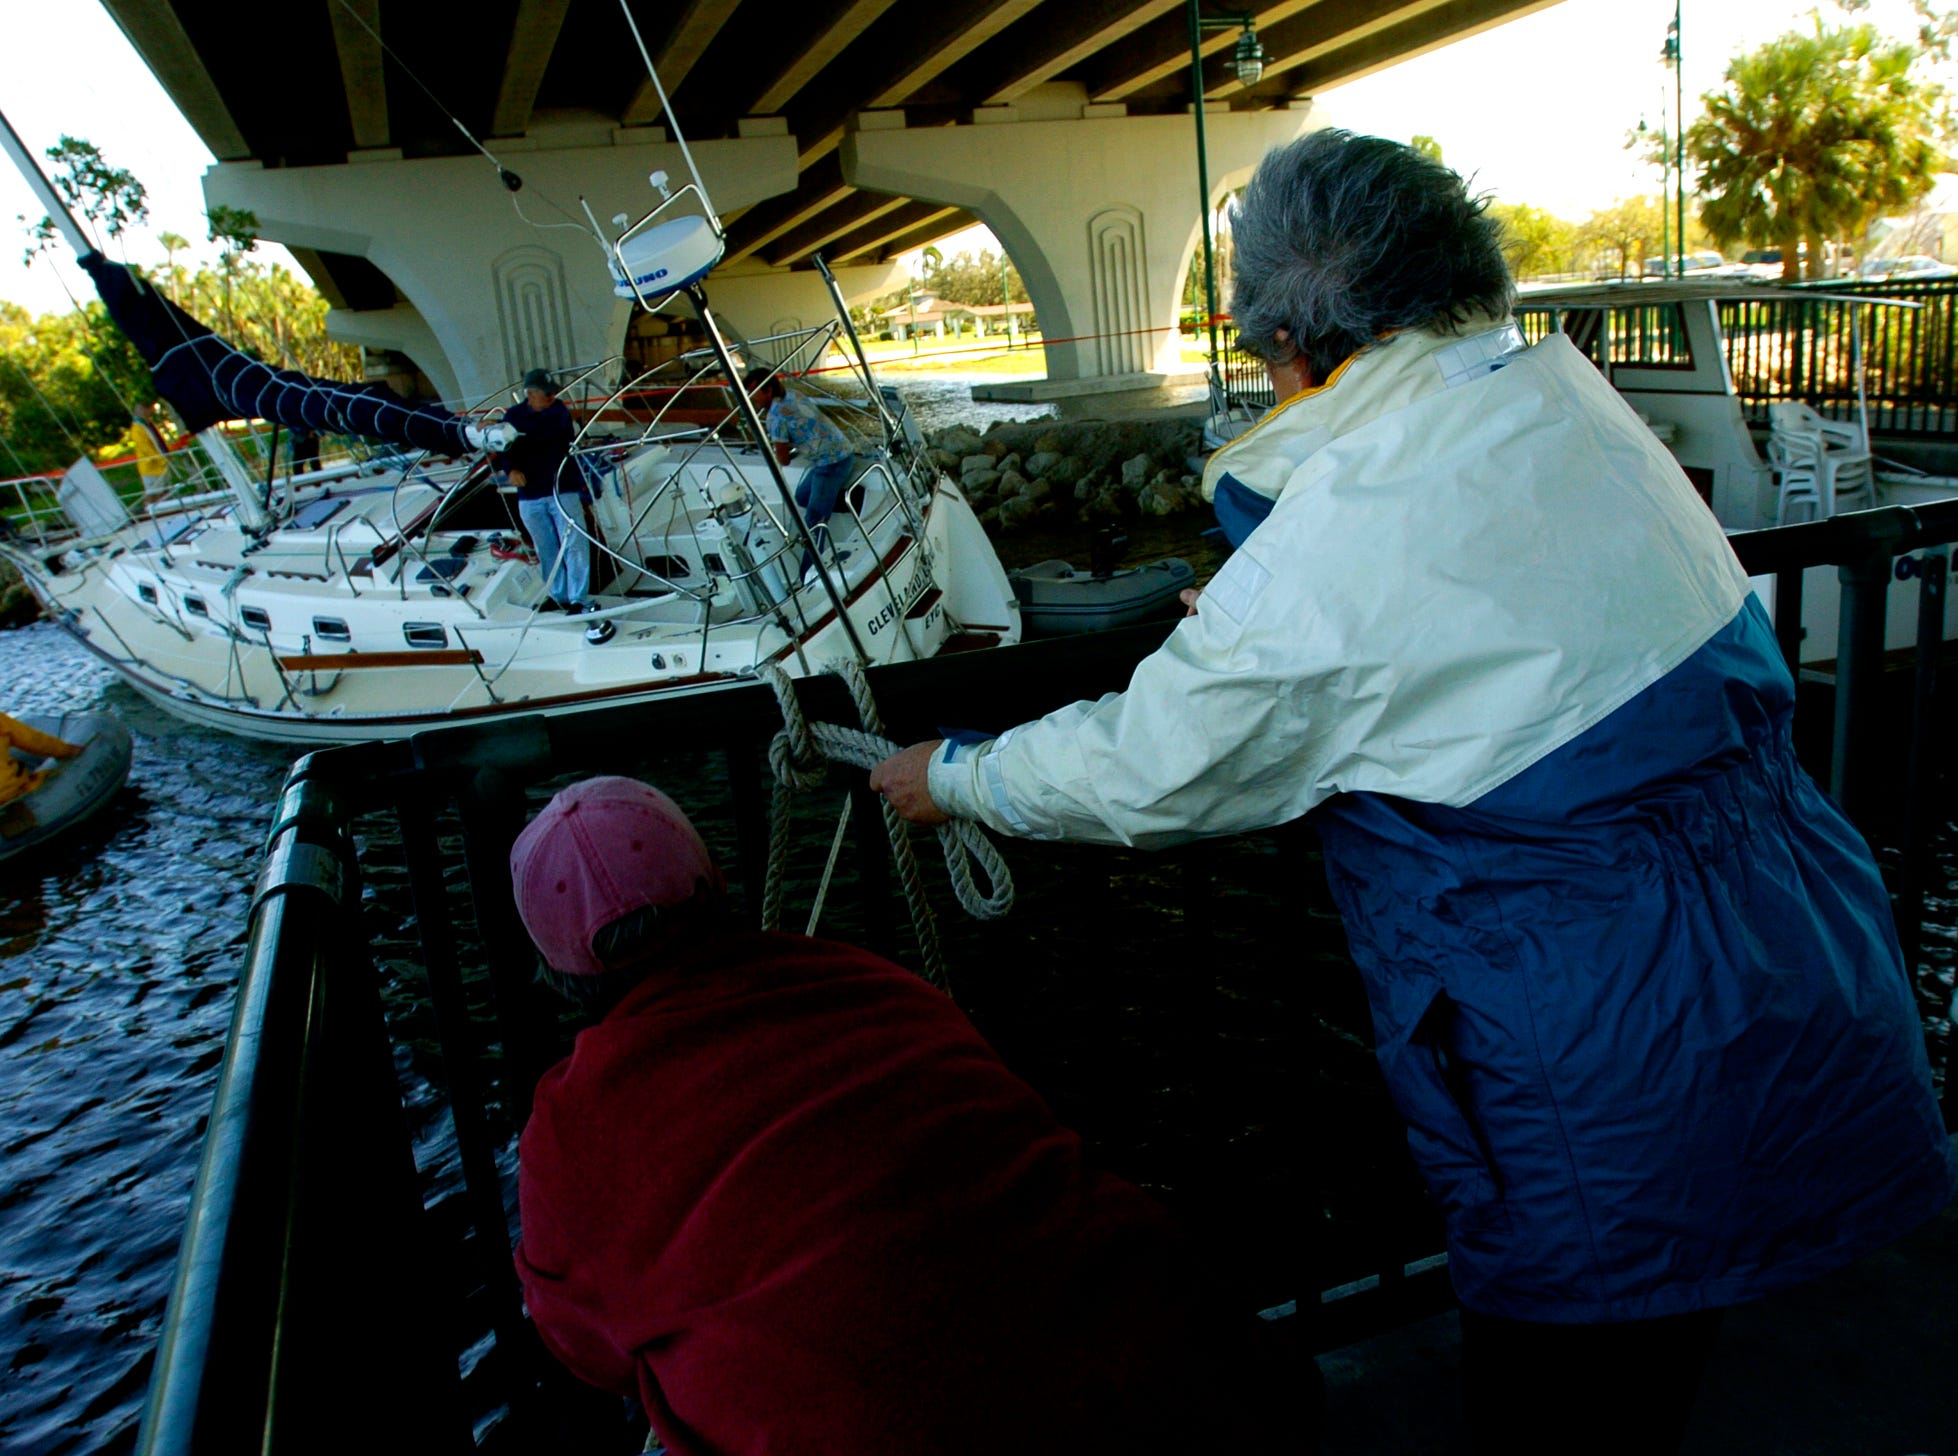 October 25, 2005 - Boat owner Chris Pierce (right) and friend Monique Griffin untie one of the lines as their husbands and friends help them free the Pierce's sailboat which broke free and crashed into a piling of Vero Beach's Barber Bridge during Hurricane Wilma. Chris Pierce and her husband Captain Richard Pierce decided to remove the vessel themselves after they received high price quotes to have someone else do it for them.